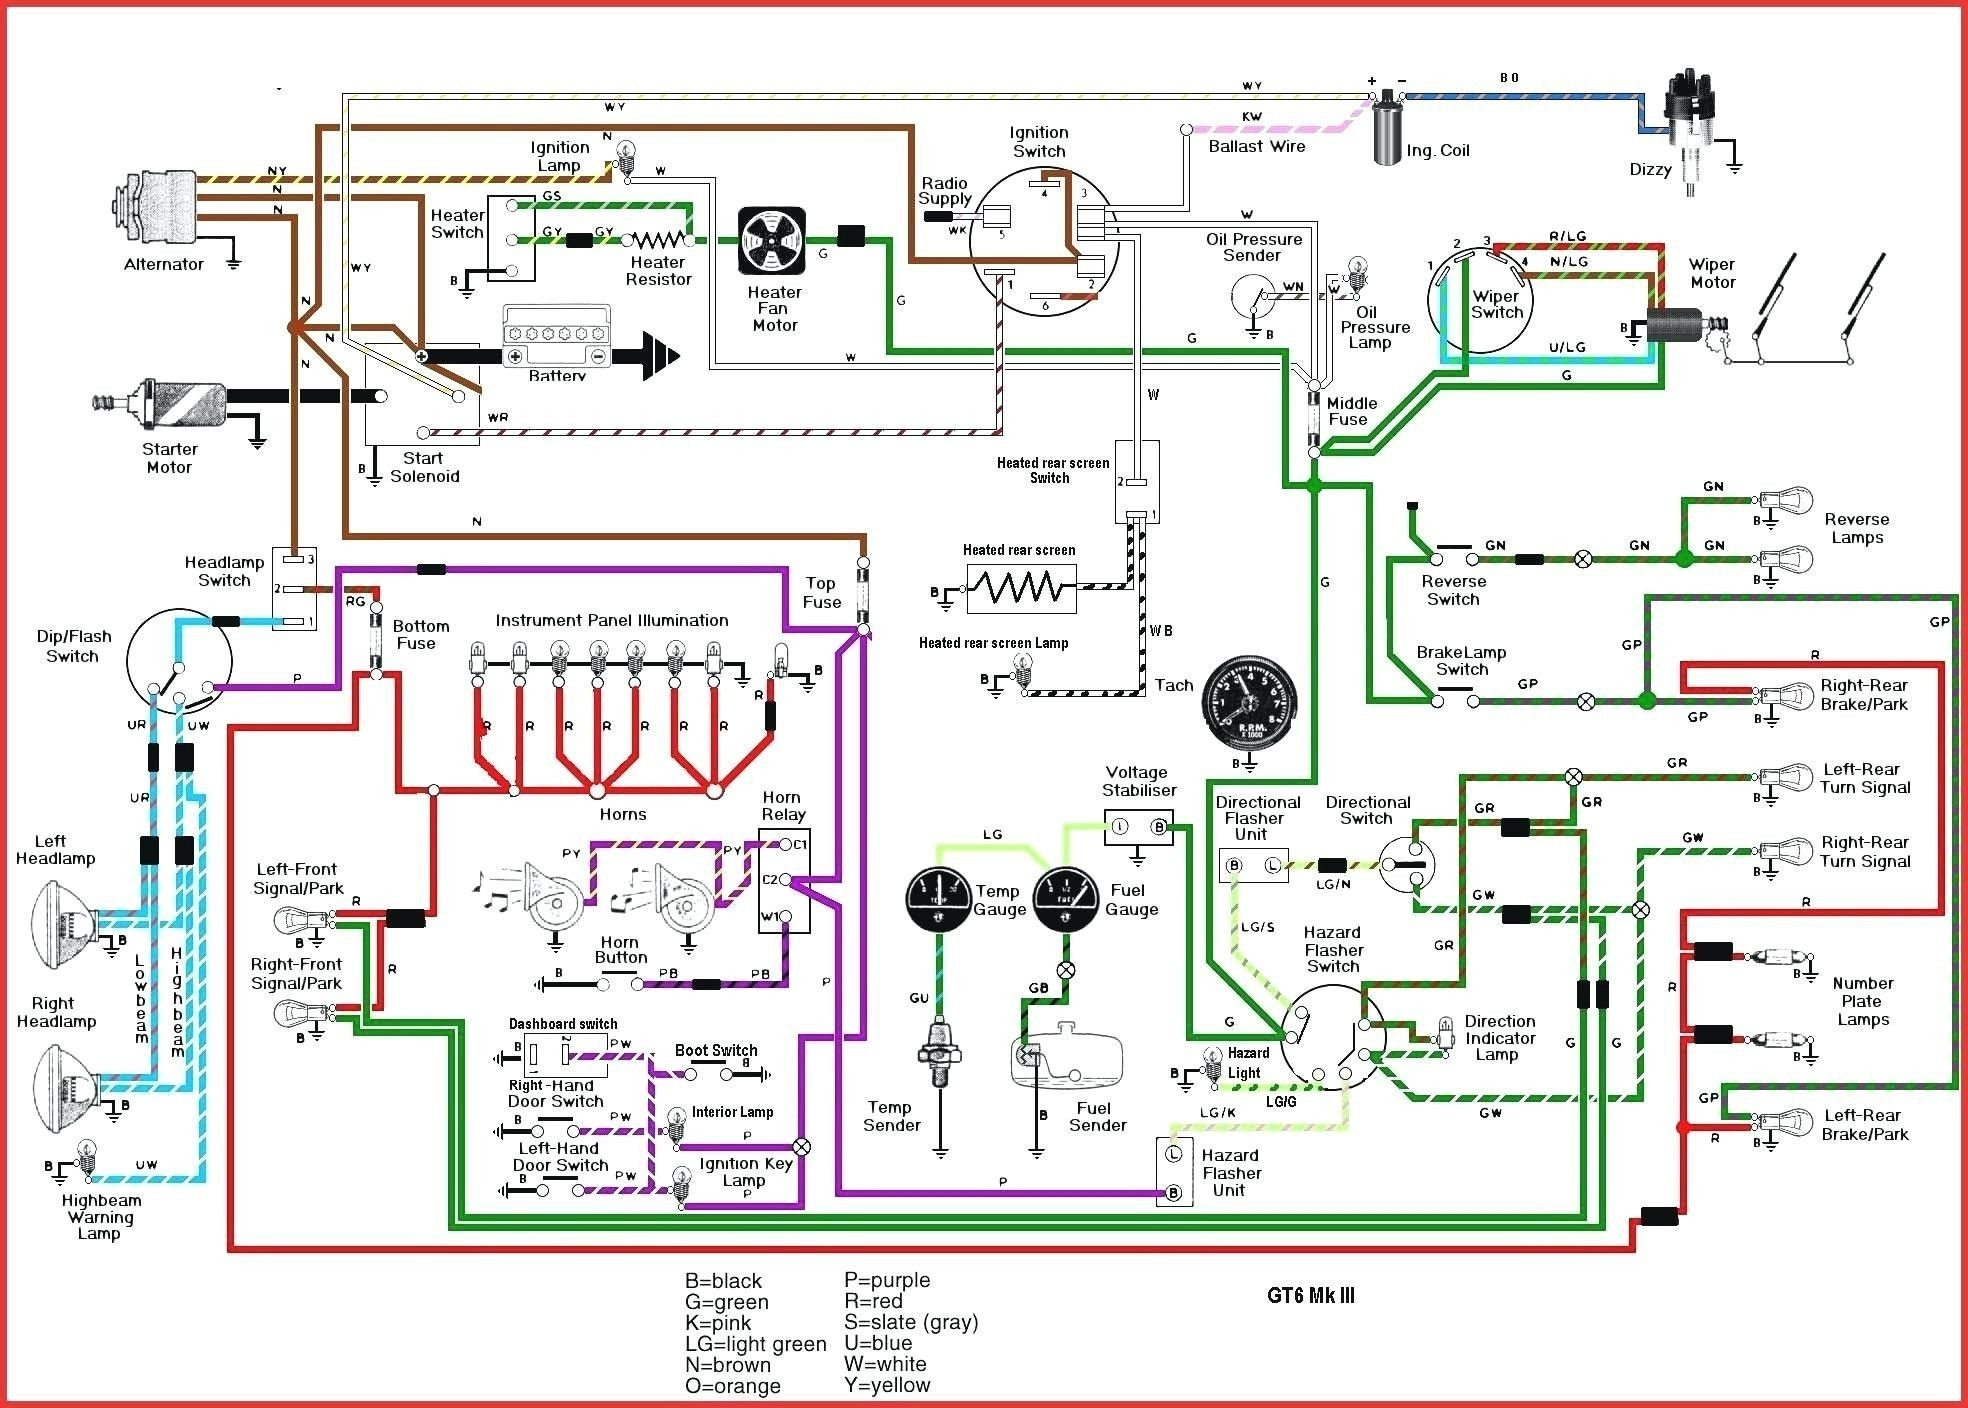 C40DT] SWM 40 WIRING DIAGRAMS [IDGG]   CABLE WORD   CABLE WORD ...